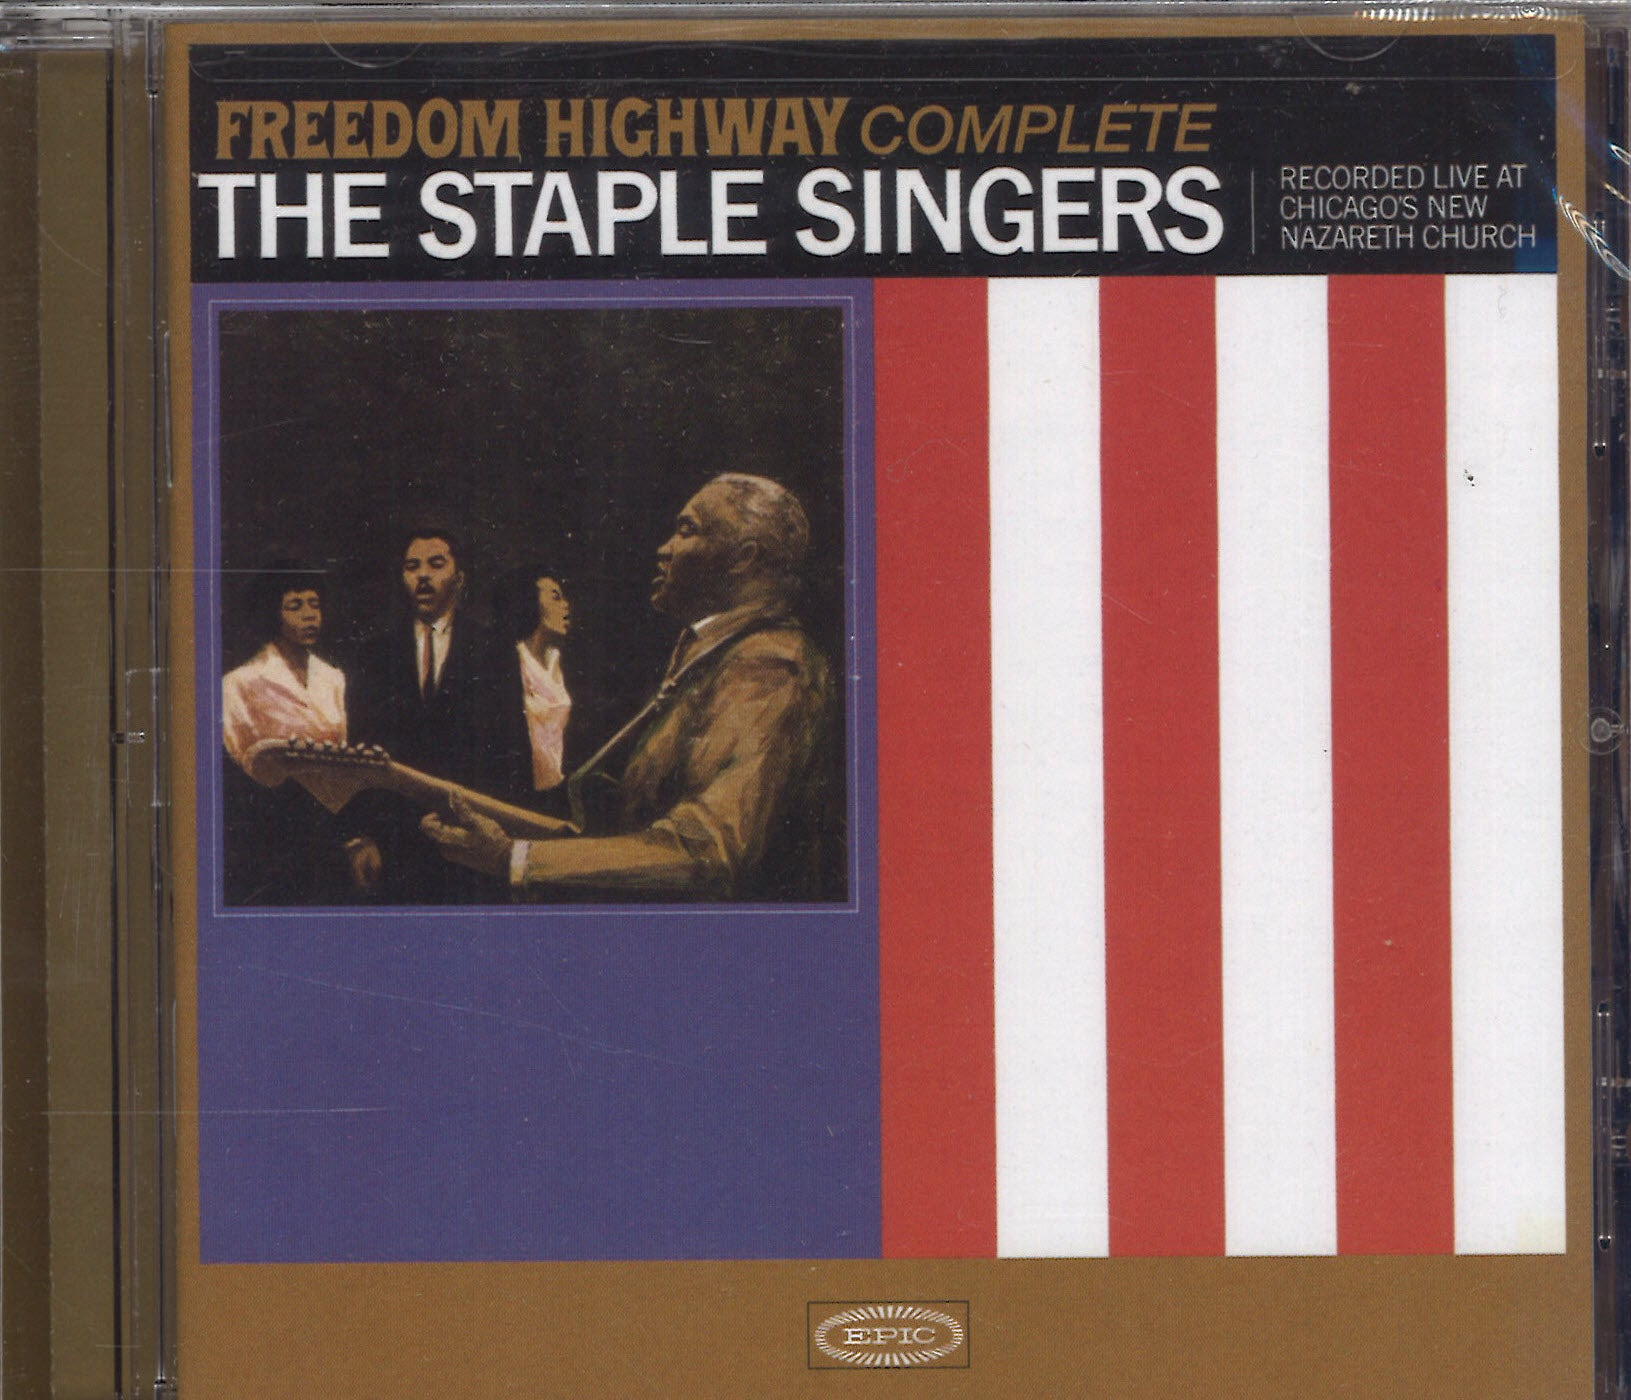 The Staple Singers Freedom Highway Complete